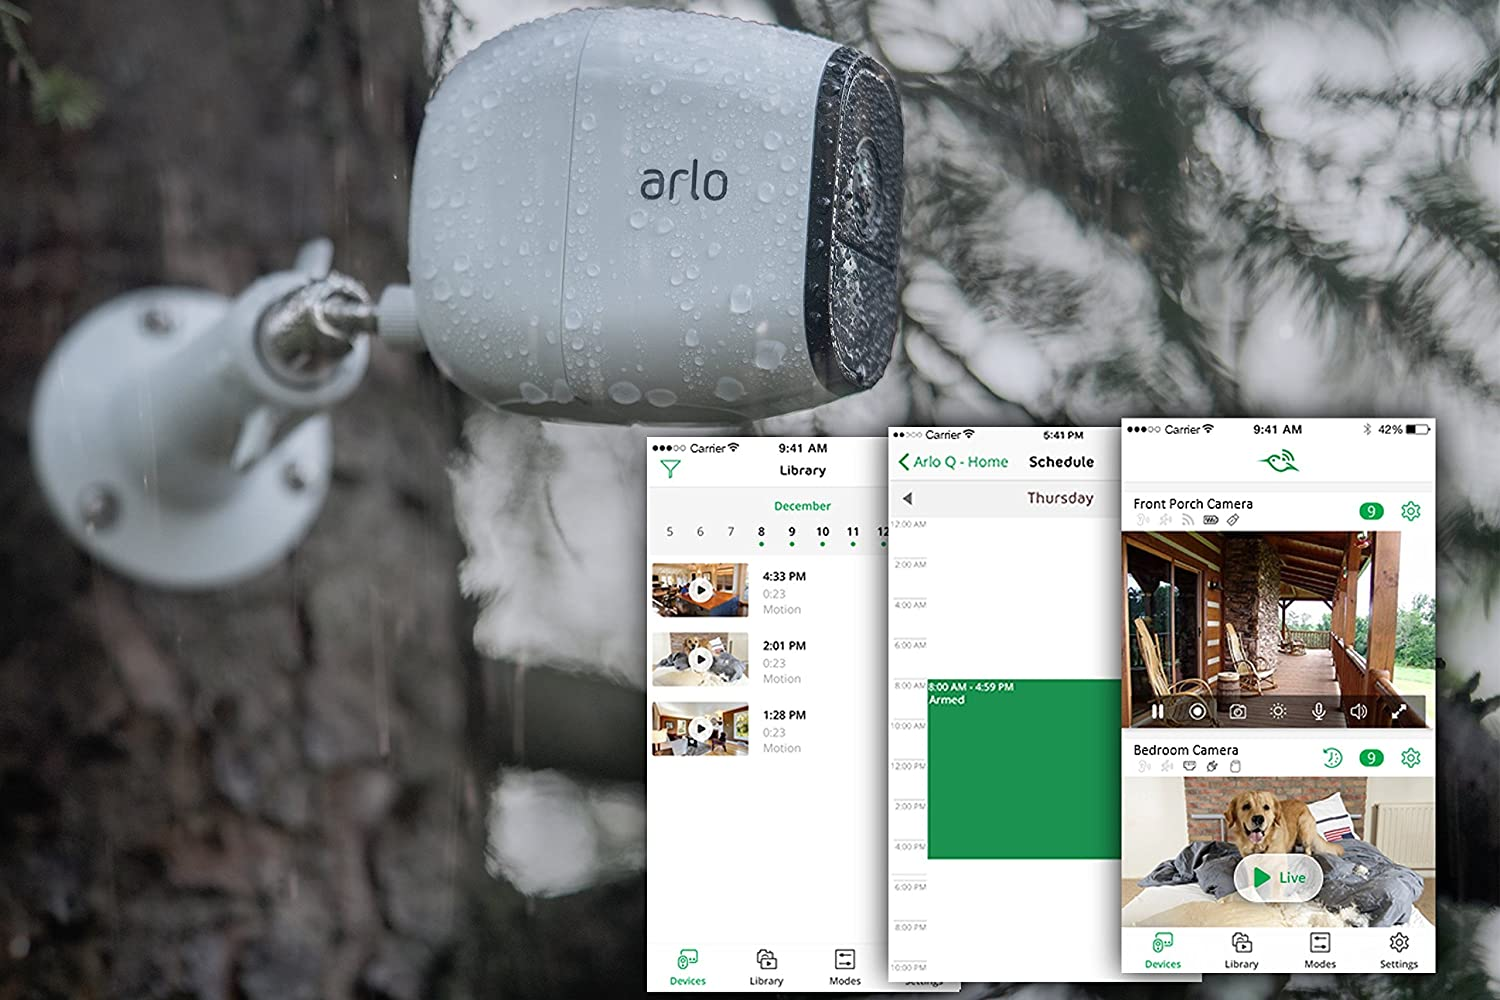 Arlo Pro – Add-on Camera Rechargeable, Night vision, Indoor Outdoor, HD Video, 2-Way Audio, Wall Mount Cloud Storage Included Works with Arlo Pro Base Station VMC4030